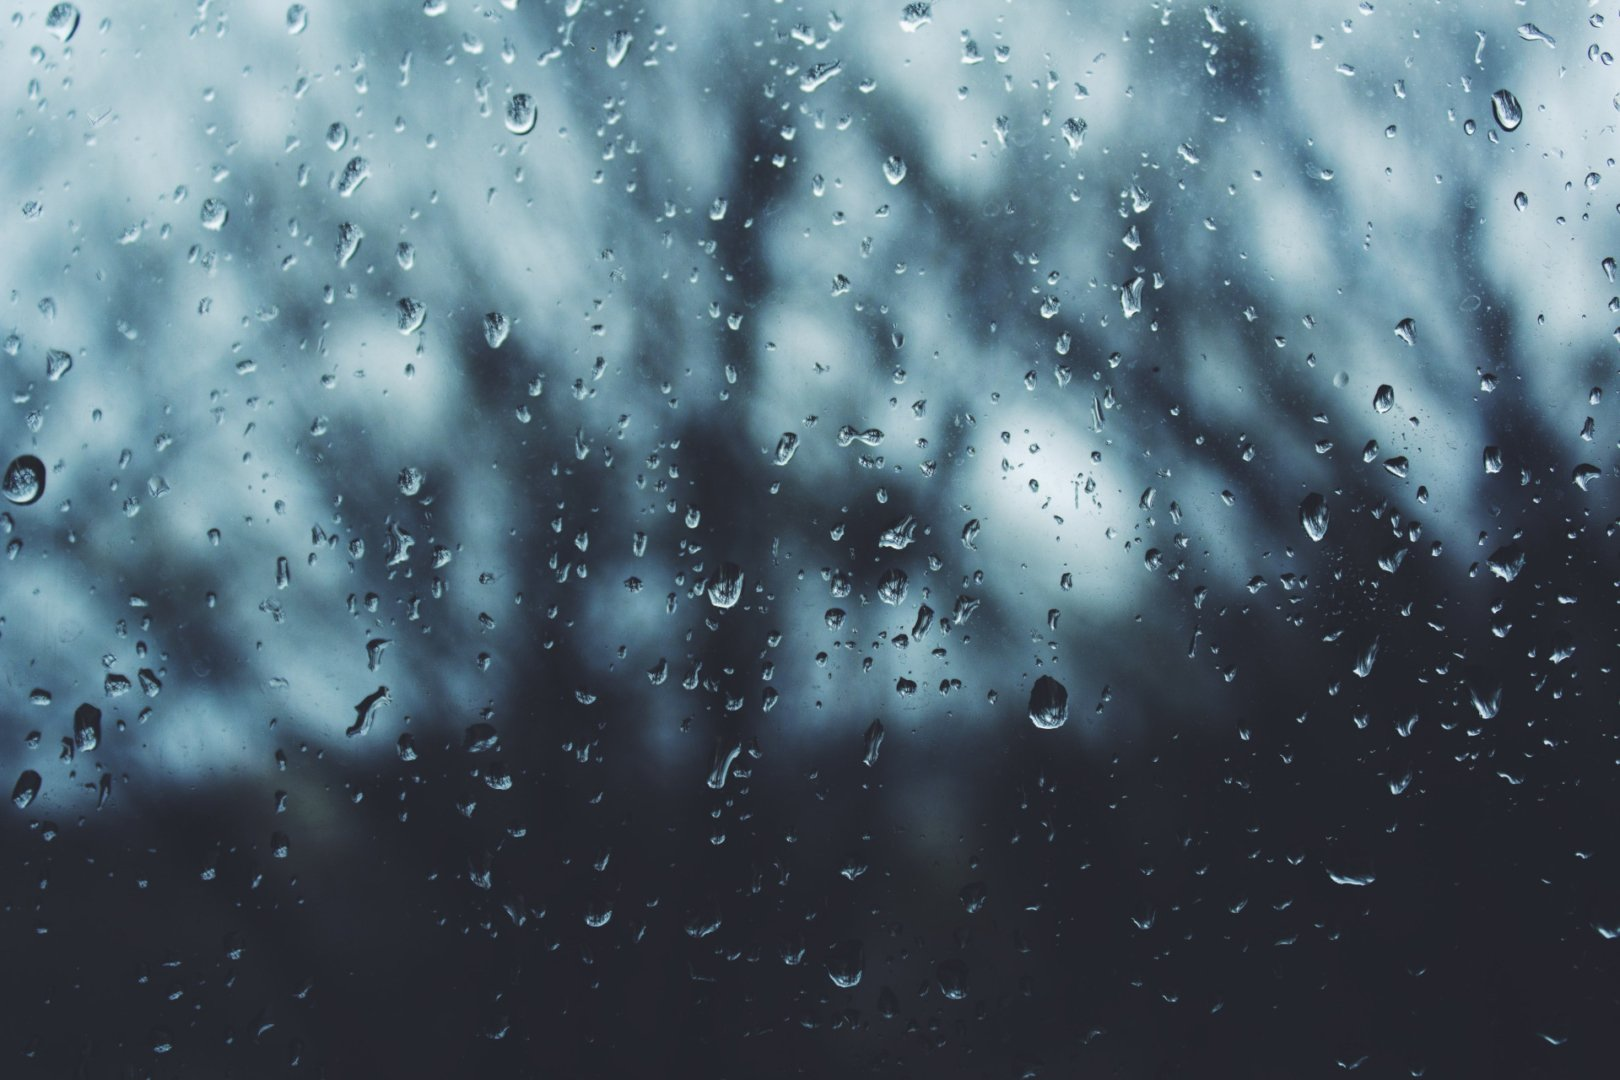 rainy mood 9 July 23, 2019